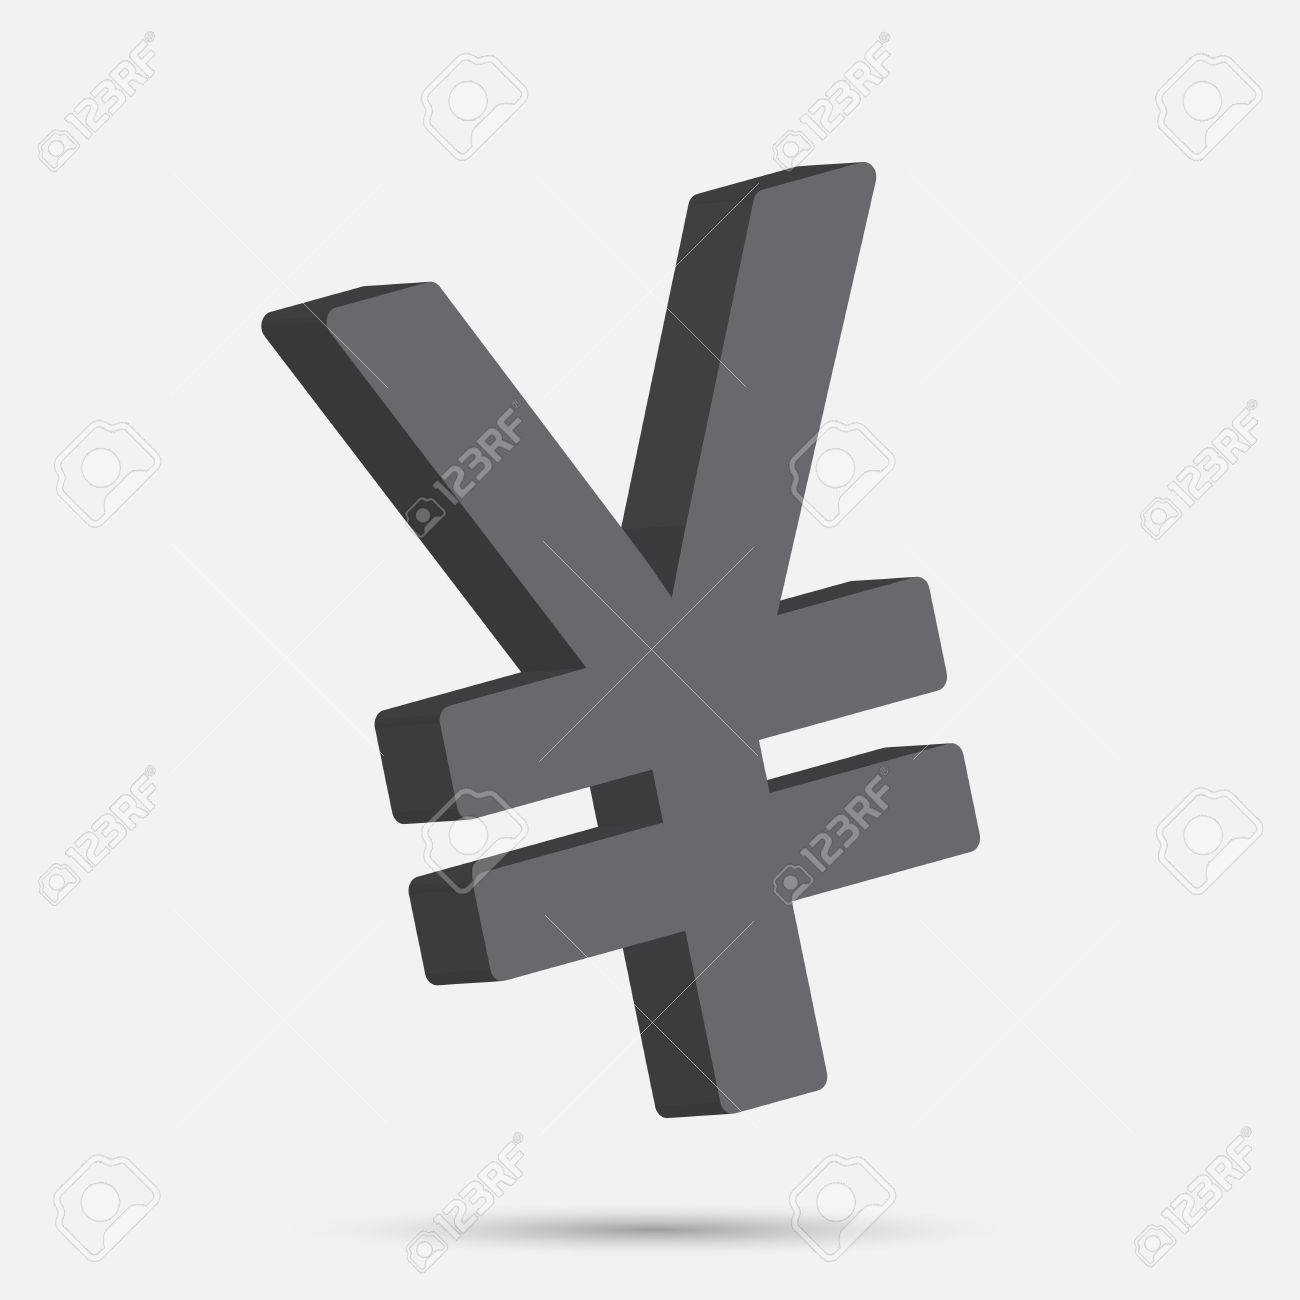 Japanese yen or chinese yuan currency symbol royalty free cliparts japanese yen or chinese yuan currency symbol stock vector 62127840 biocorpaavc Image collections